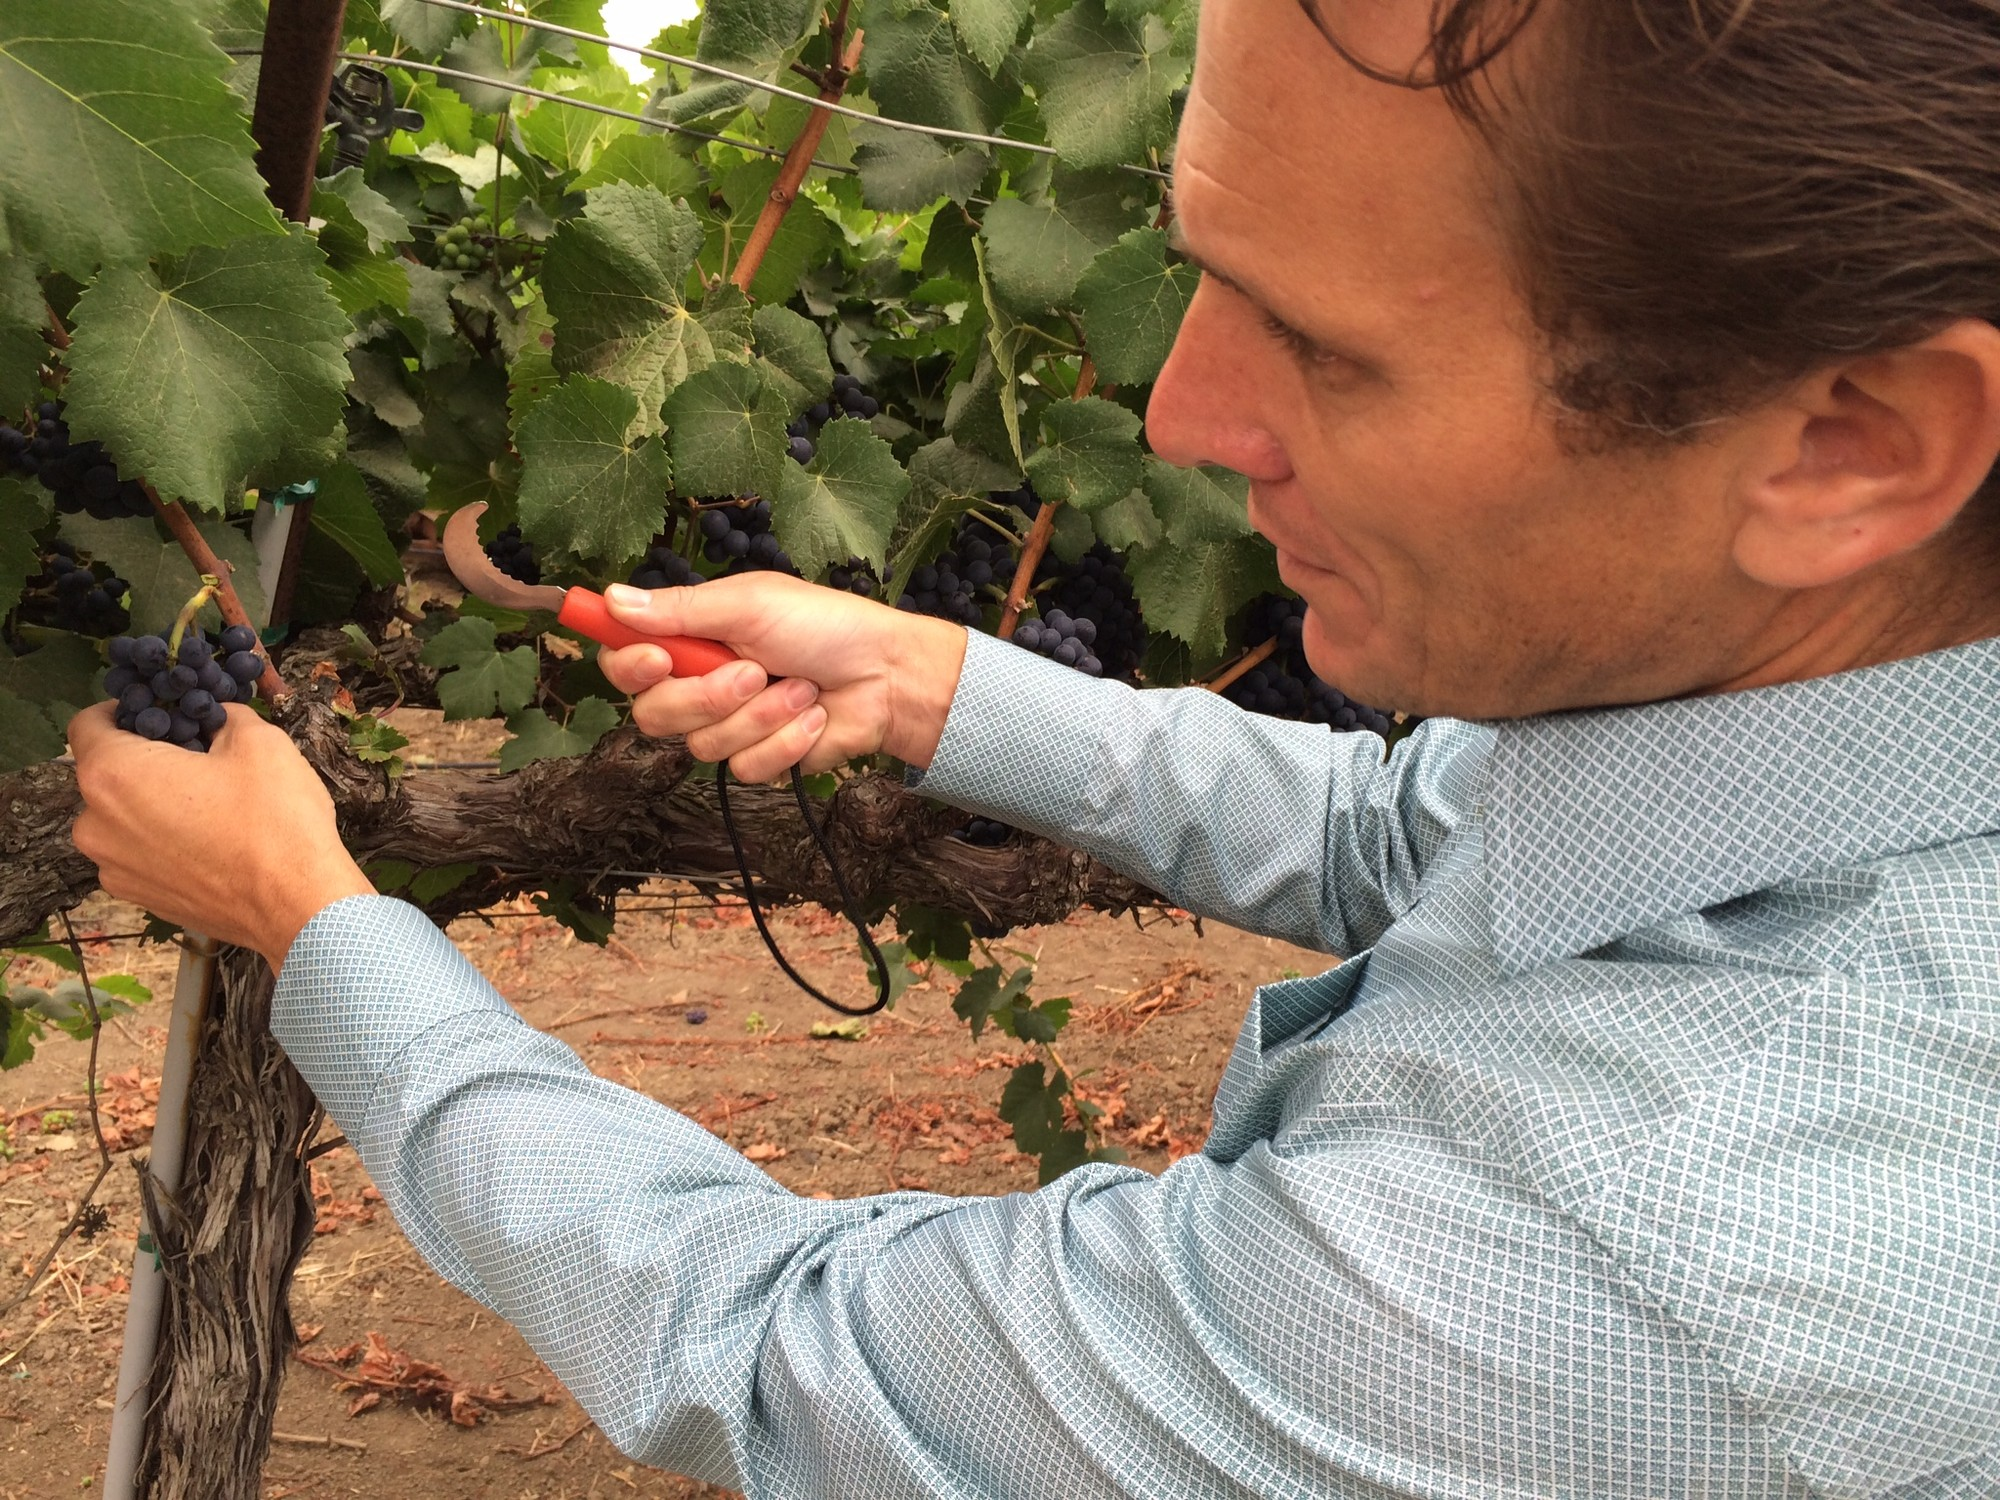 Jon Ruel, president of Trefethen Family Vineyards in the Napa Valley, examines pinot noir grapes to be harvested. (Mina Kim/KQED)